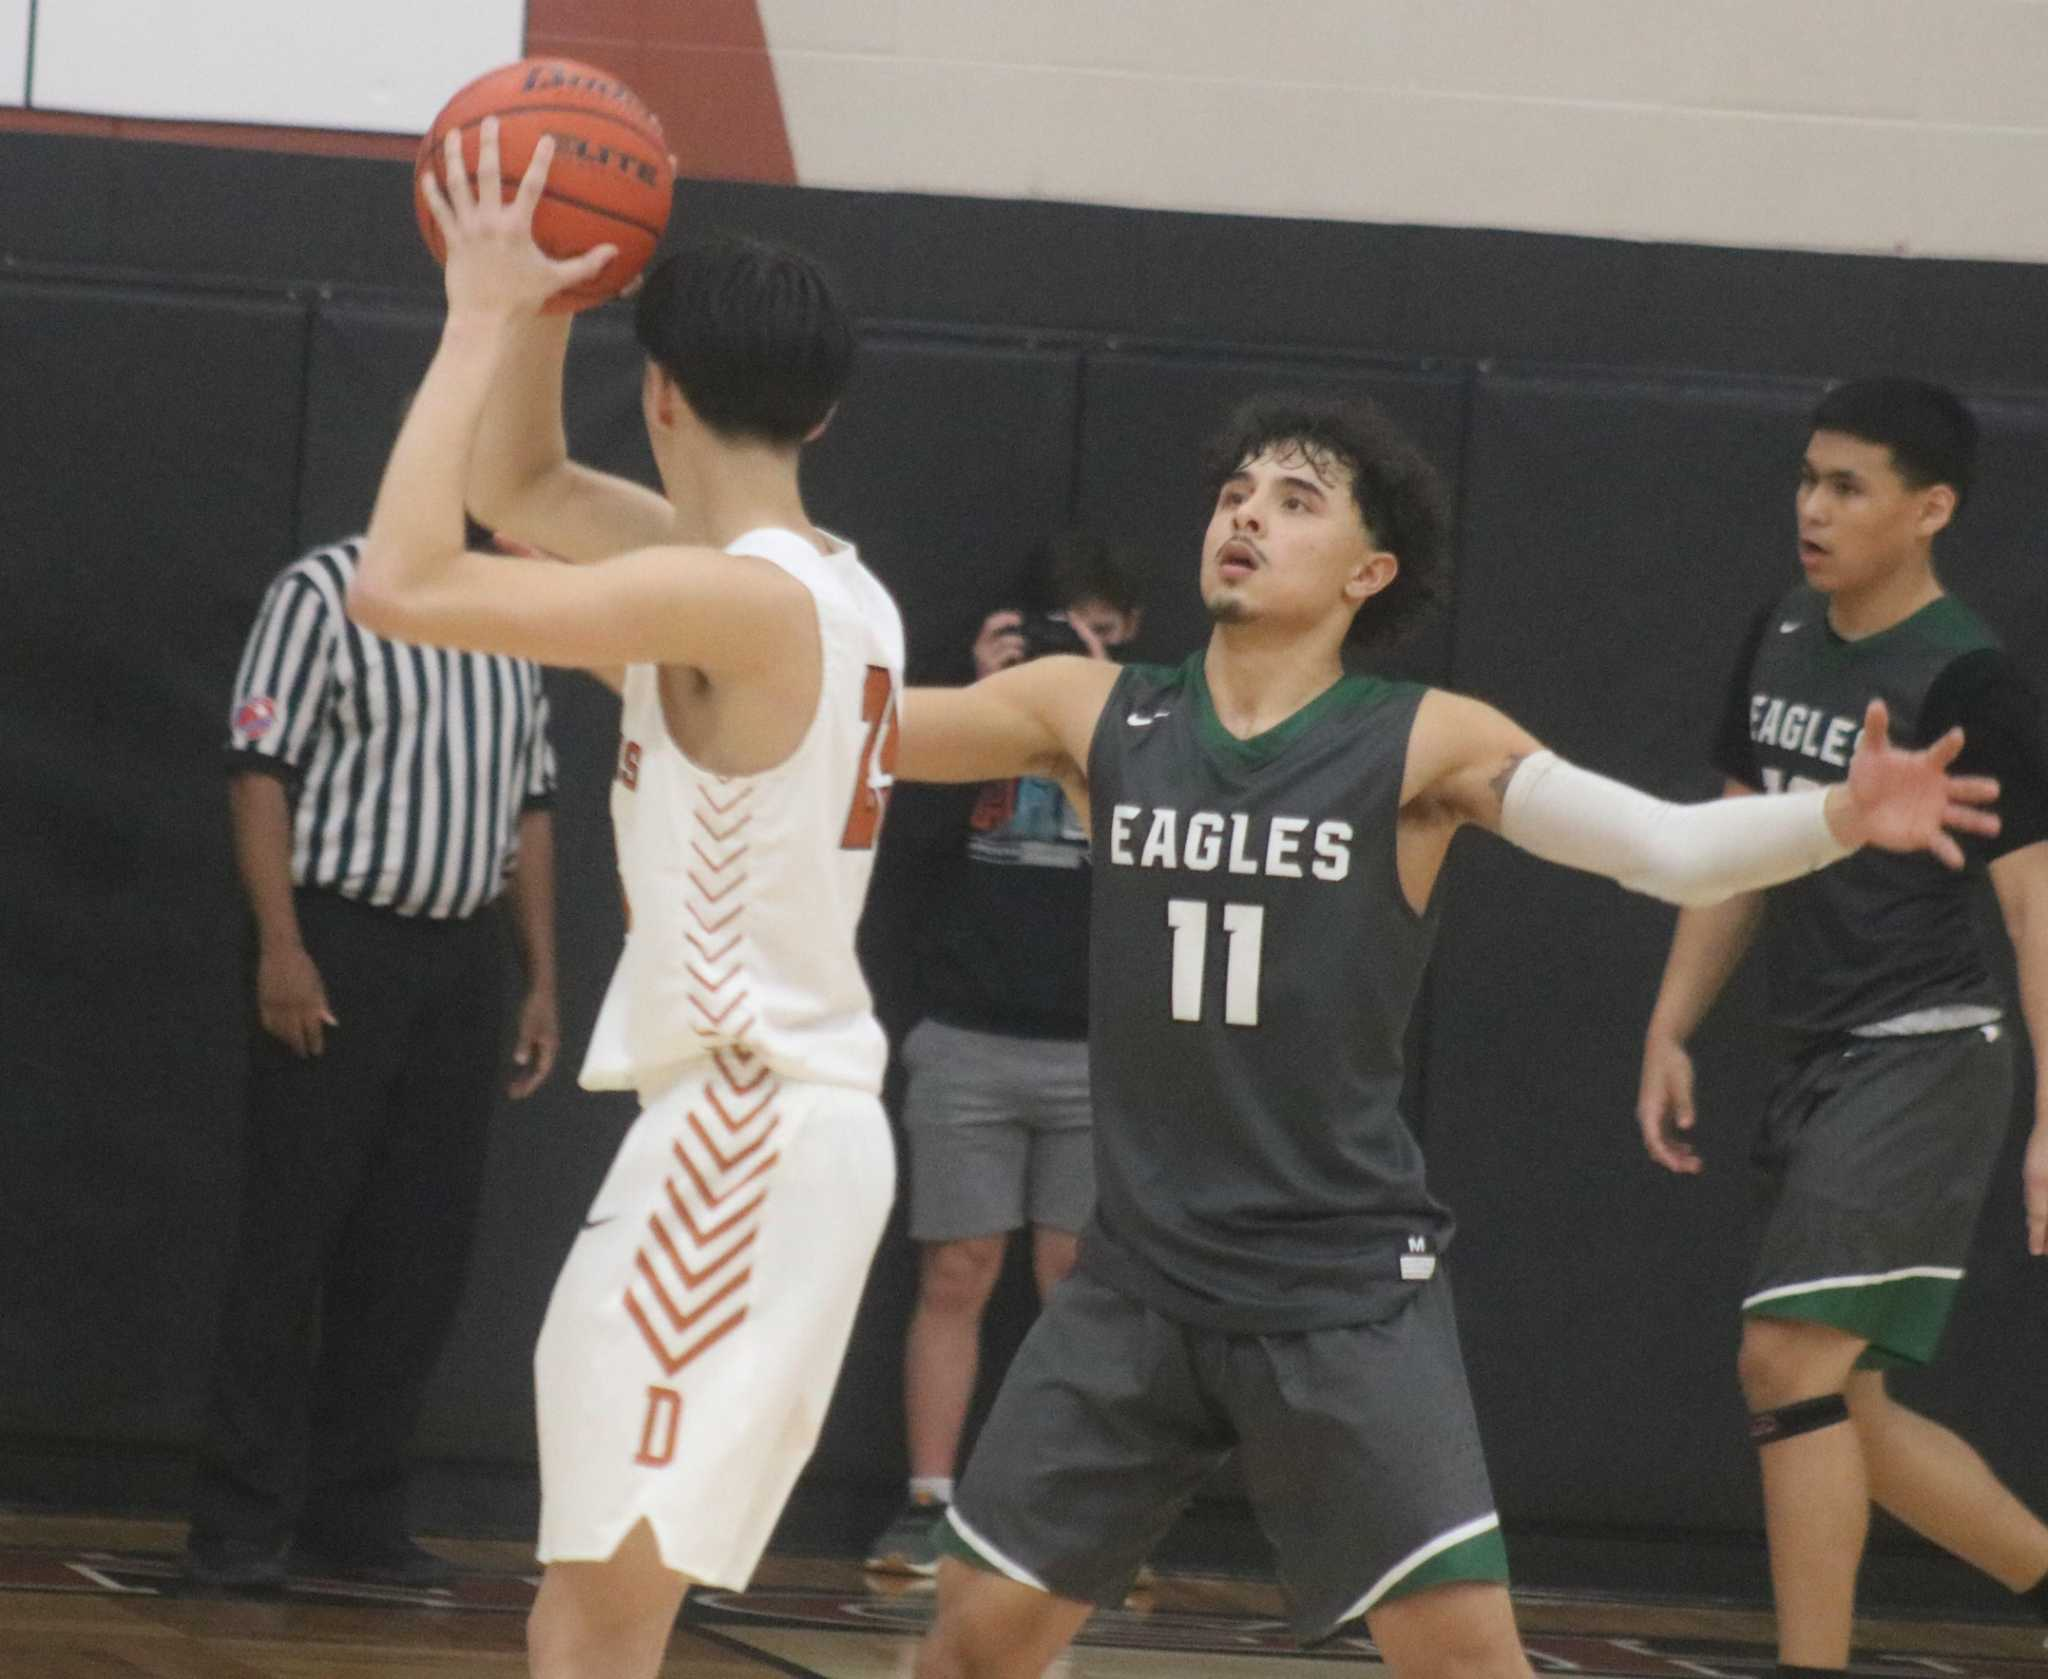 Longhorns capture fifth straight district win after outscoring the Eagles 20-6 in the fourth